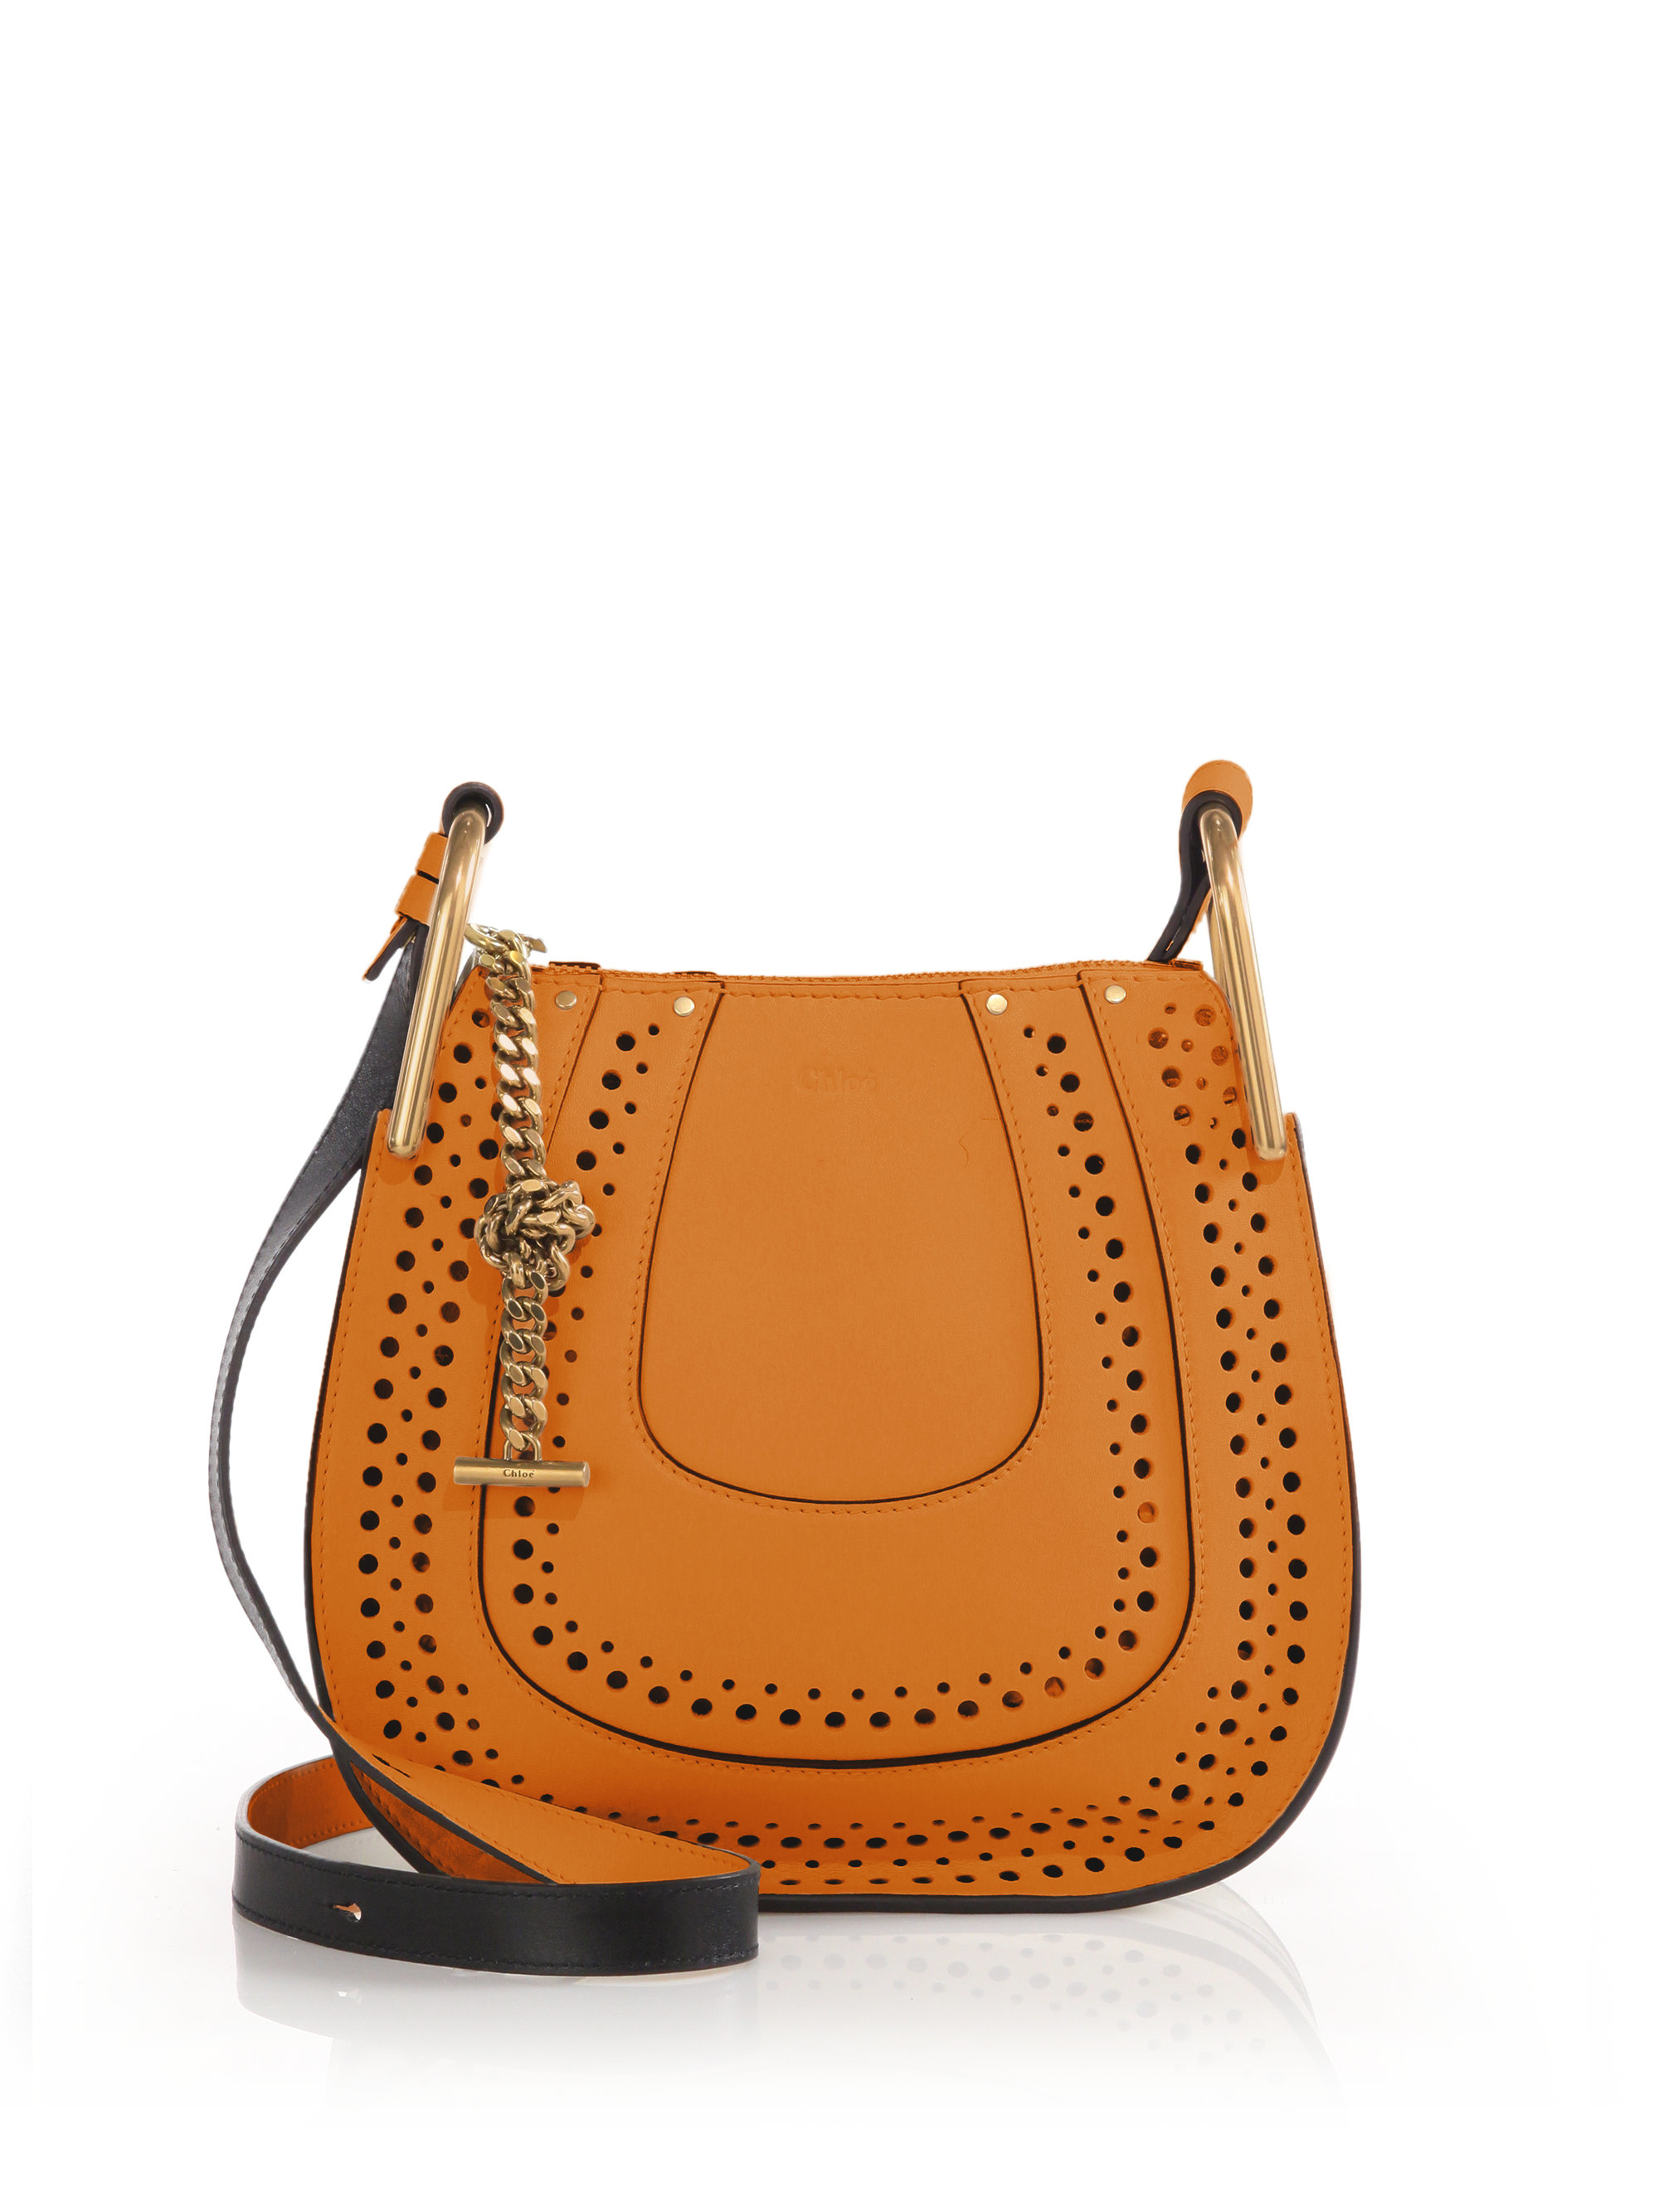 replica chloe marcie - chloe hayley small leather shoulder bag , chloe online